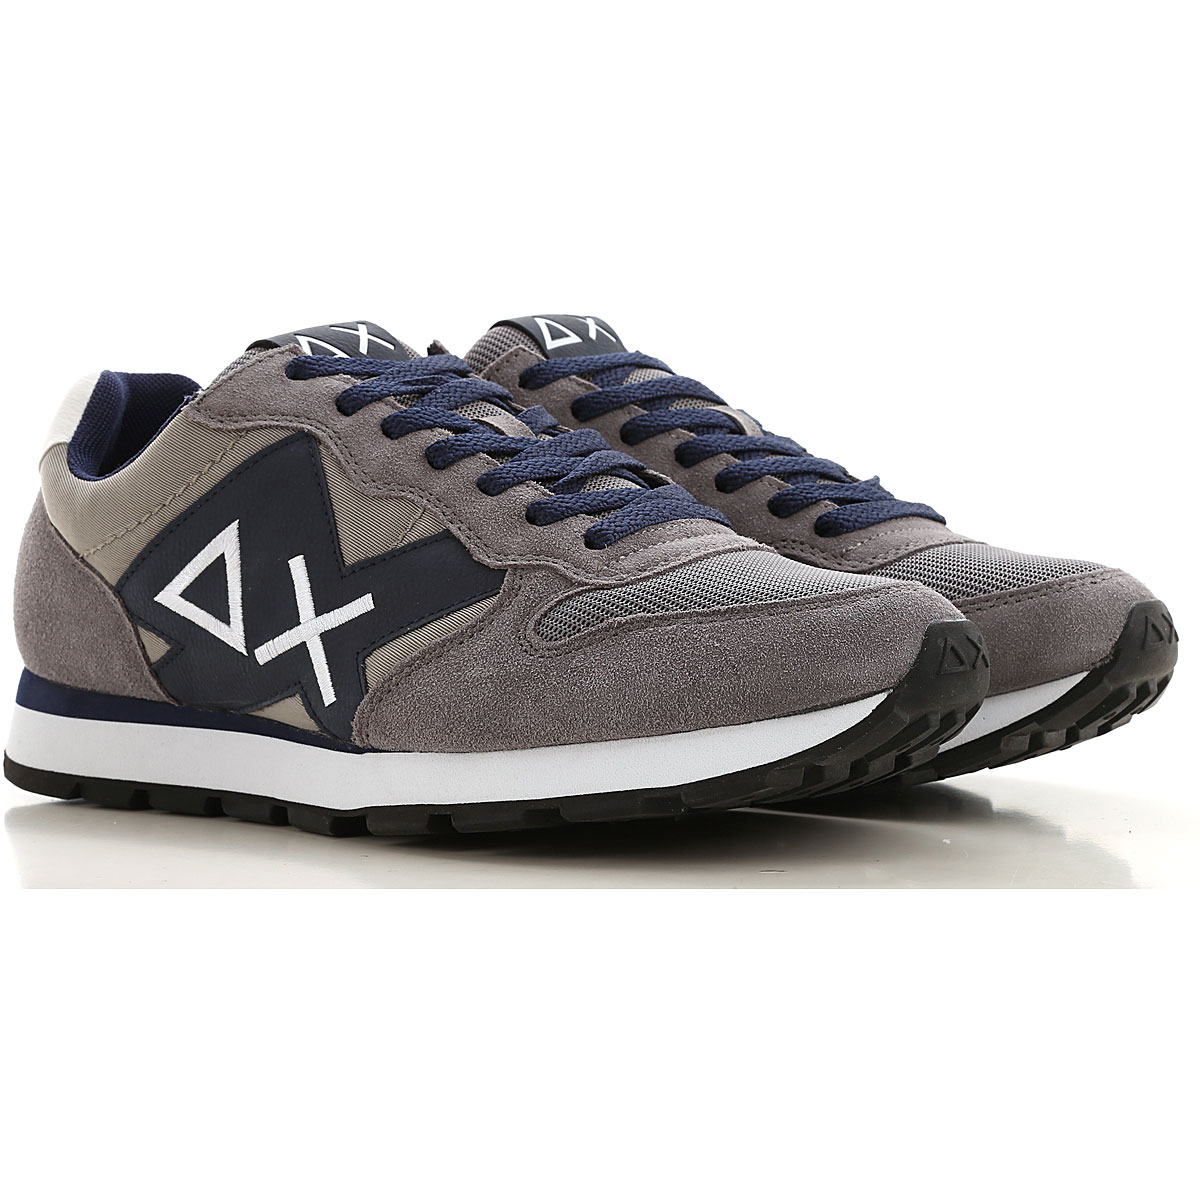 Sun68 Sneakers for Men On Sale, Grey, Suede leather, 2019, 10 10.5 11.5 7.5 8